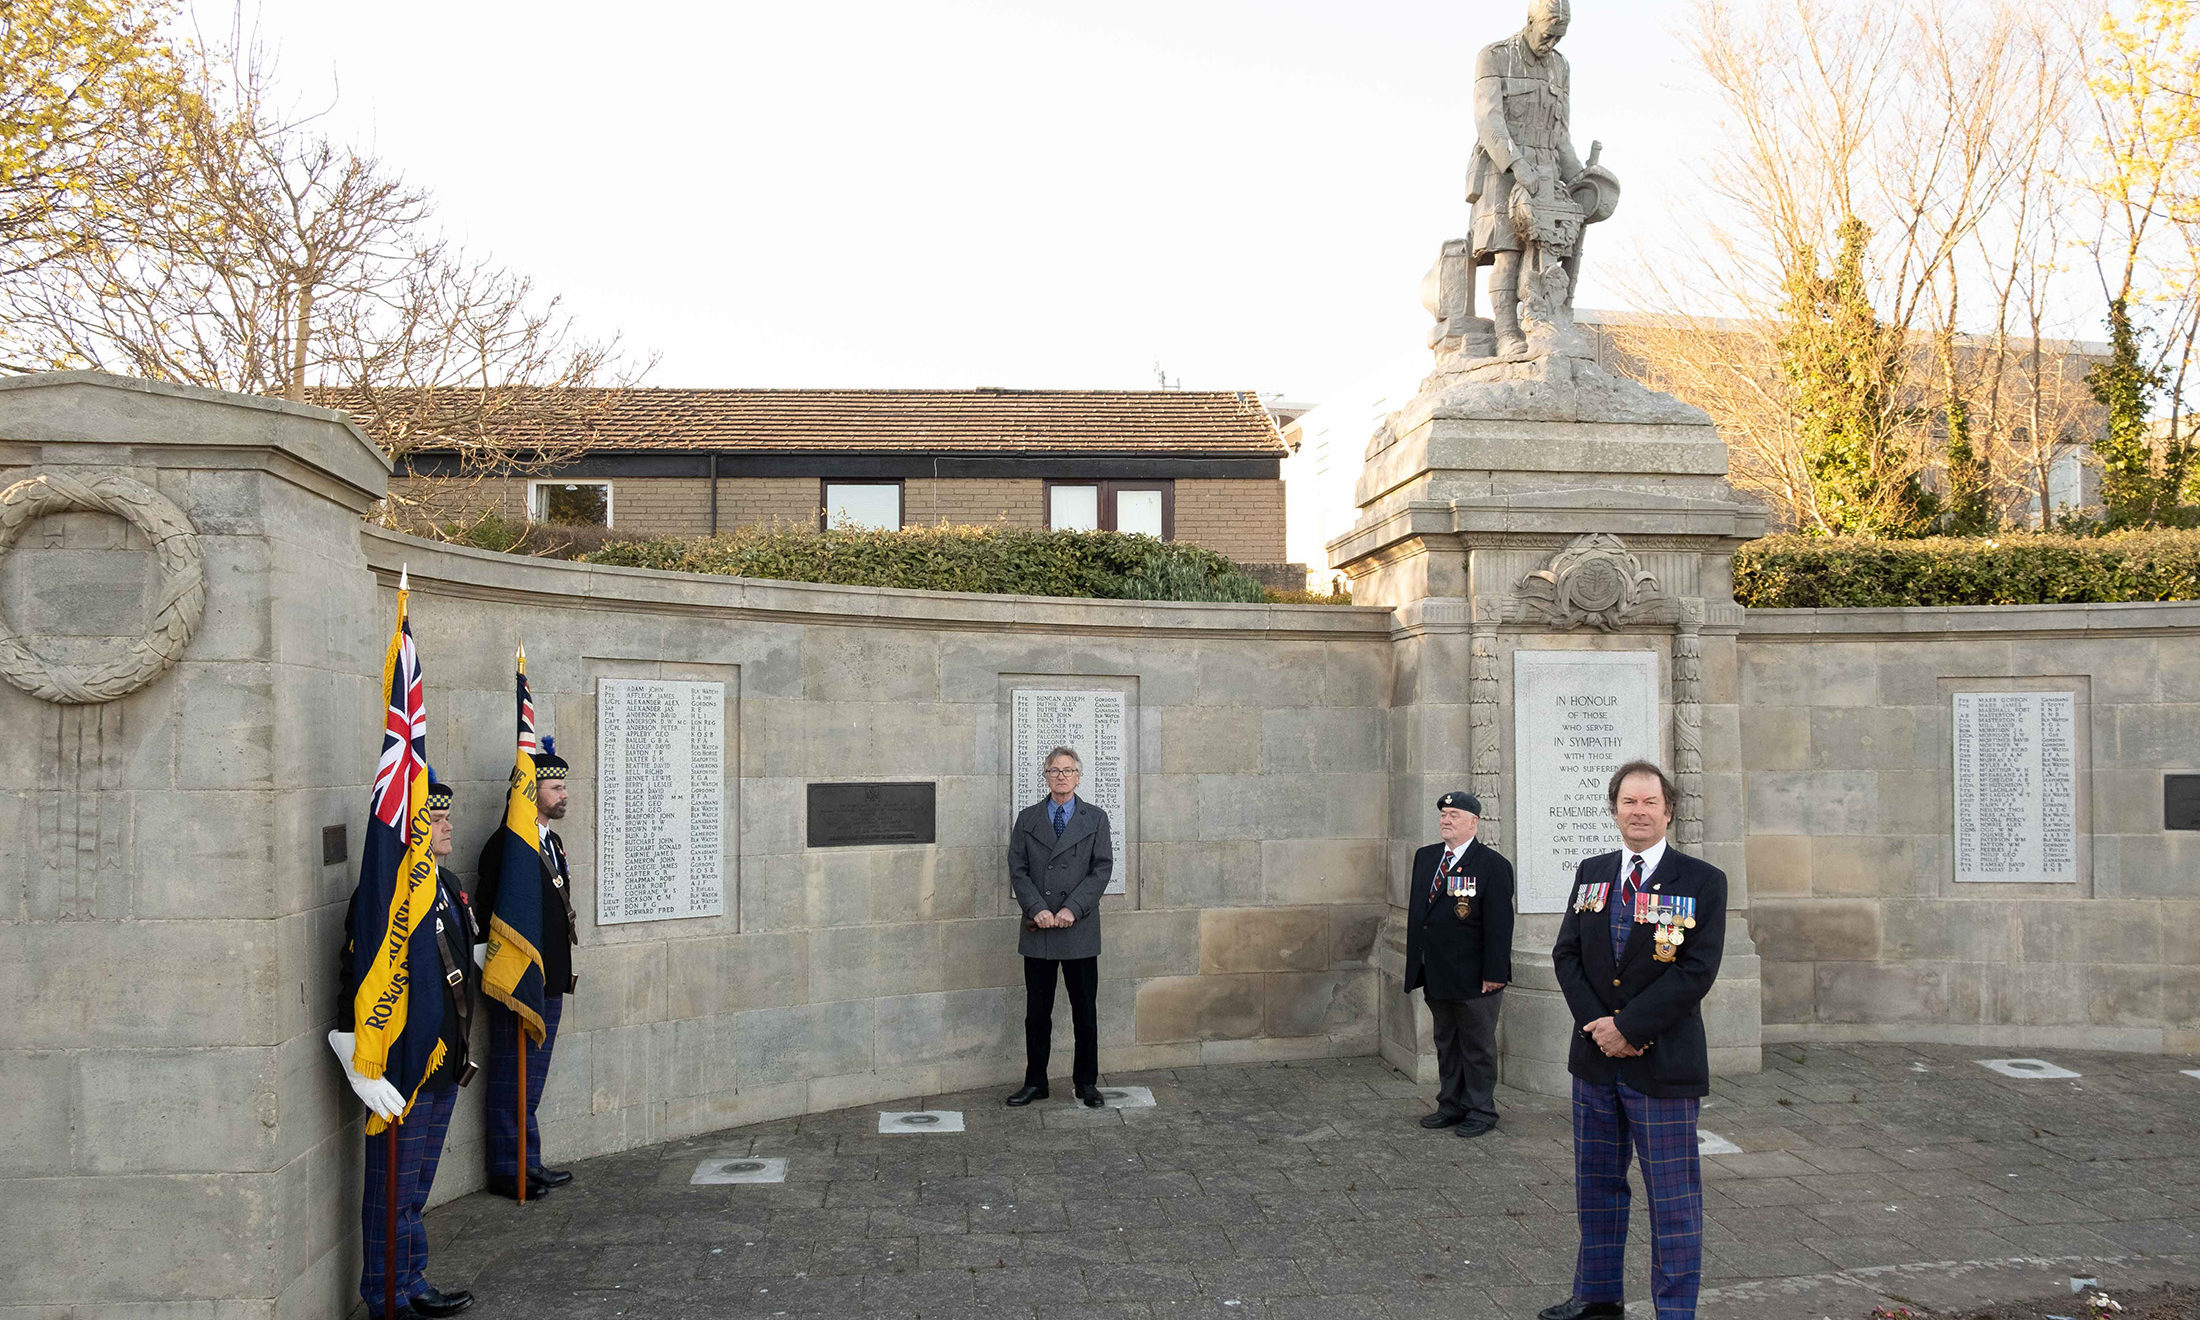 Standard bearers Paul Thomson and Rab Cumming, Darrell Milton, a former Commander in the Royal Australian Navy,  Carnoustie legion vice-chairman Danny Downs and Legion chairman Davie Paton at the Carnoustie memorial.